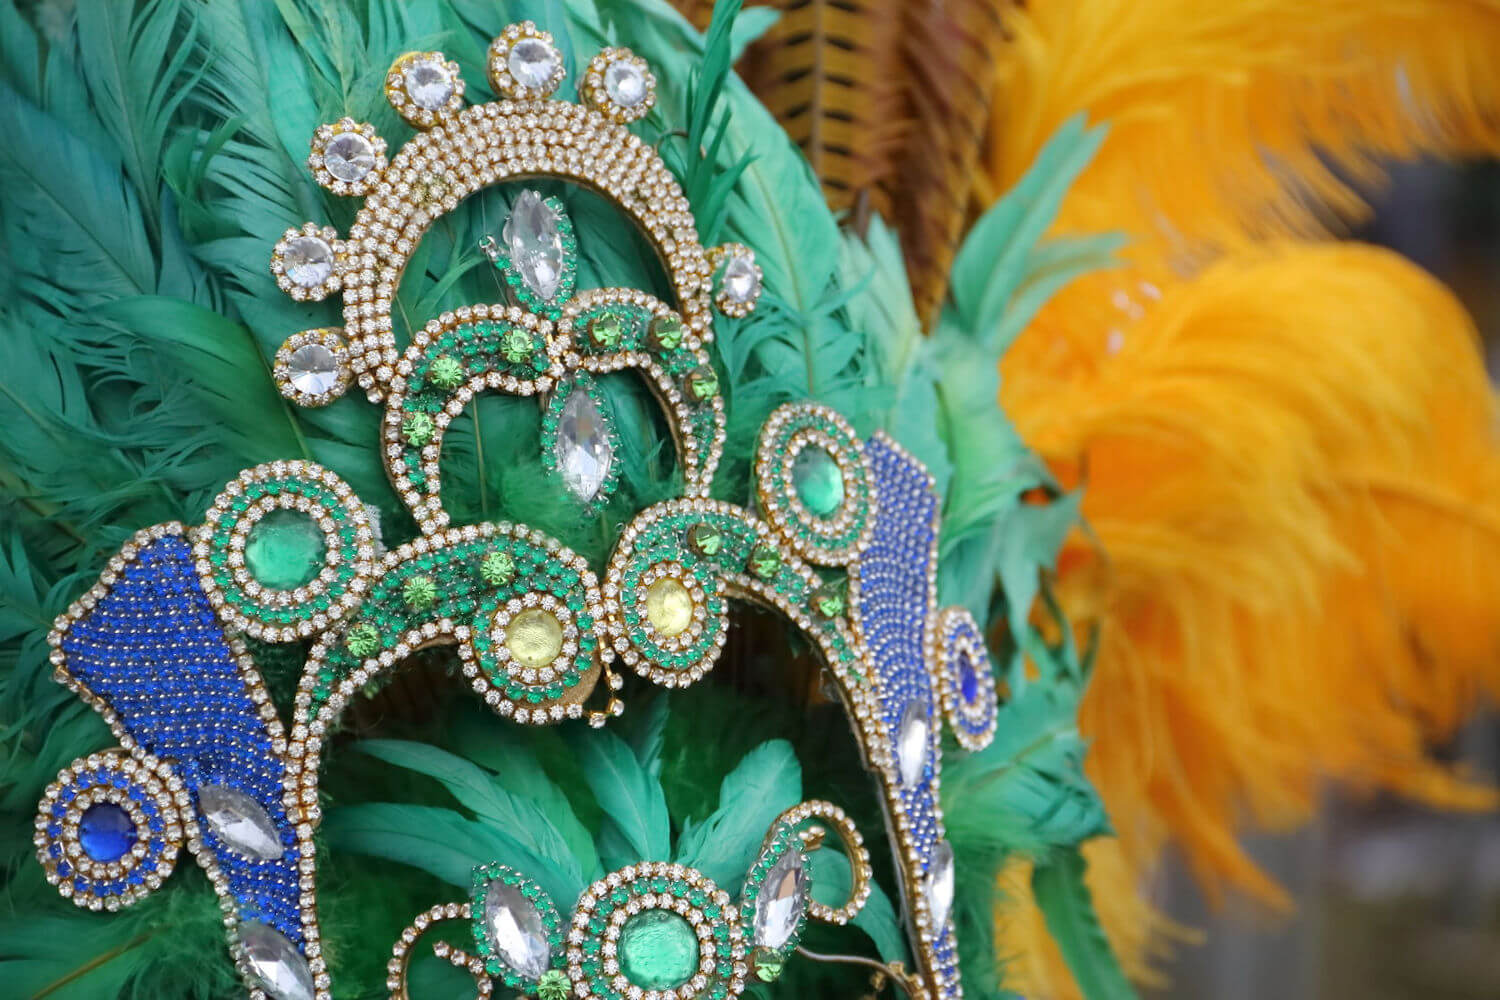 carnival dress, events in tenerife